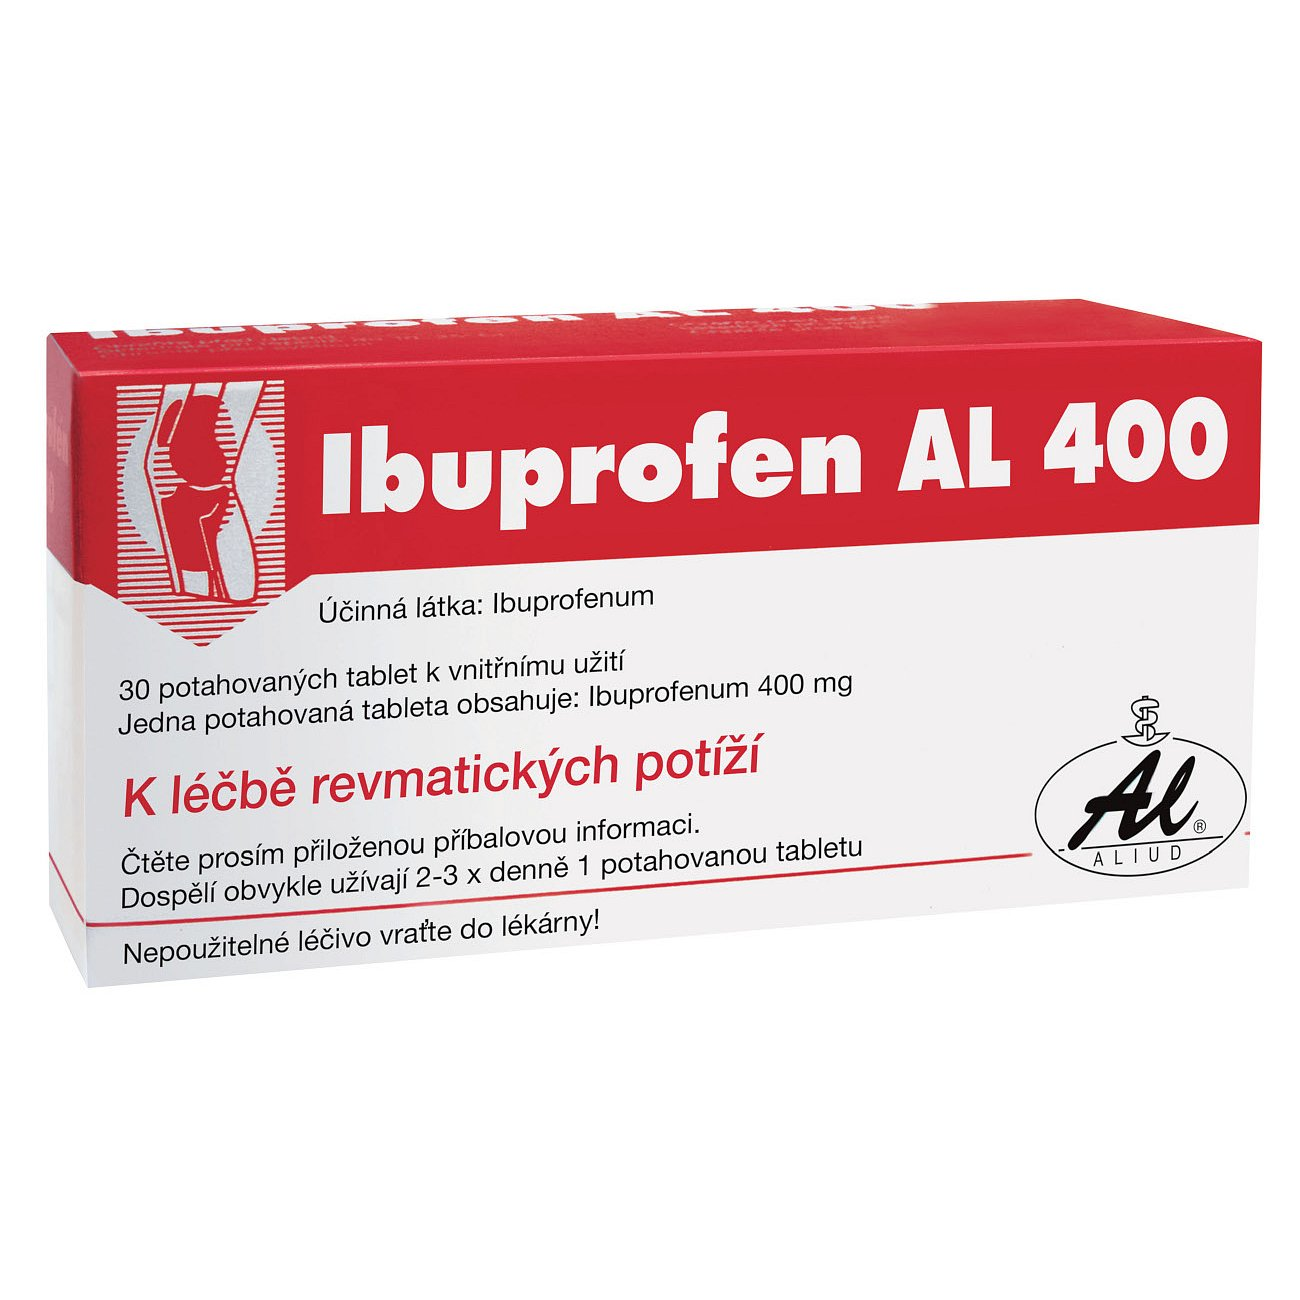 Ibuprofen AL 400 400mg 30 tablet